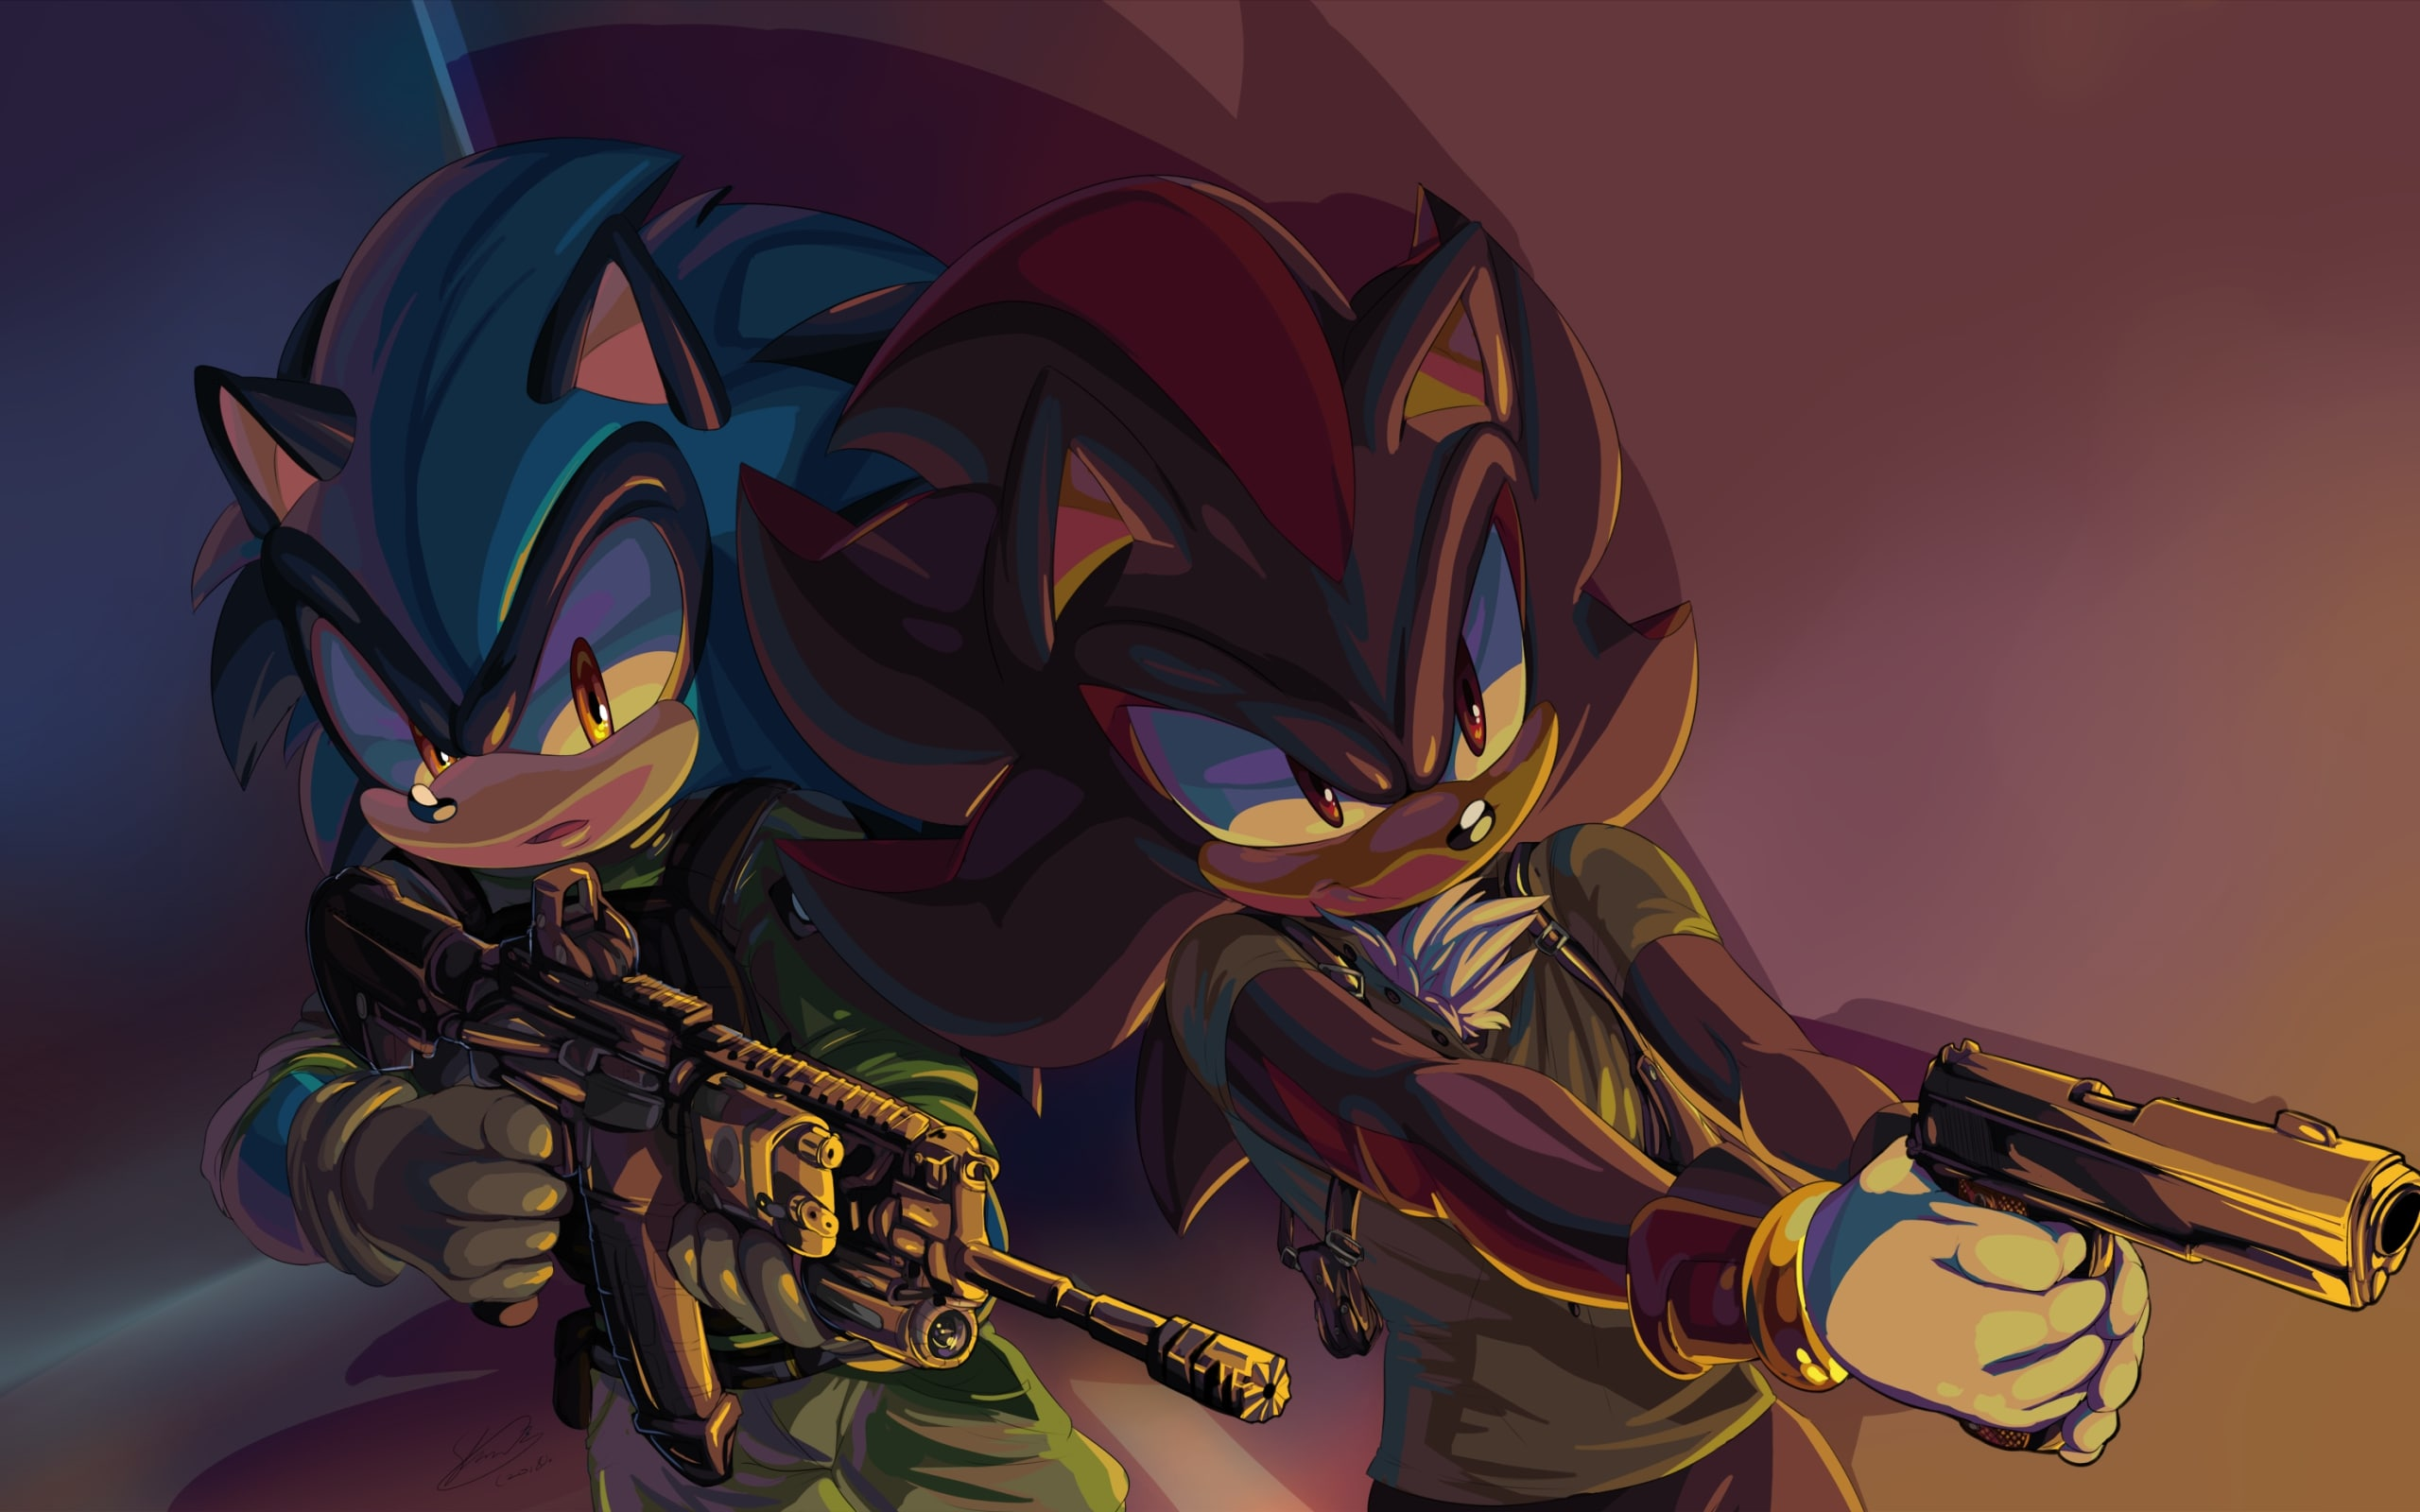 Shadow Sonic The Hedgehog Weapon Video Game Wallpaper